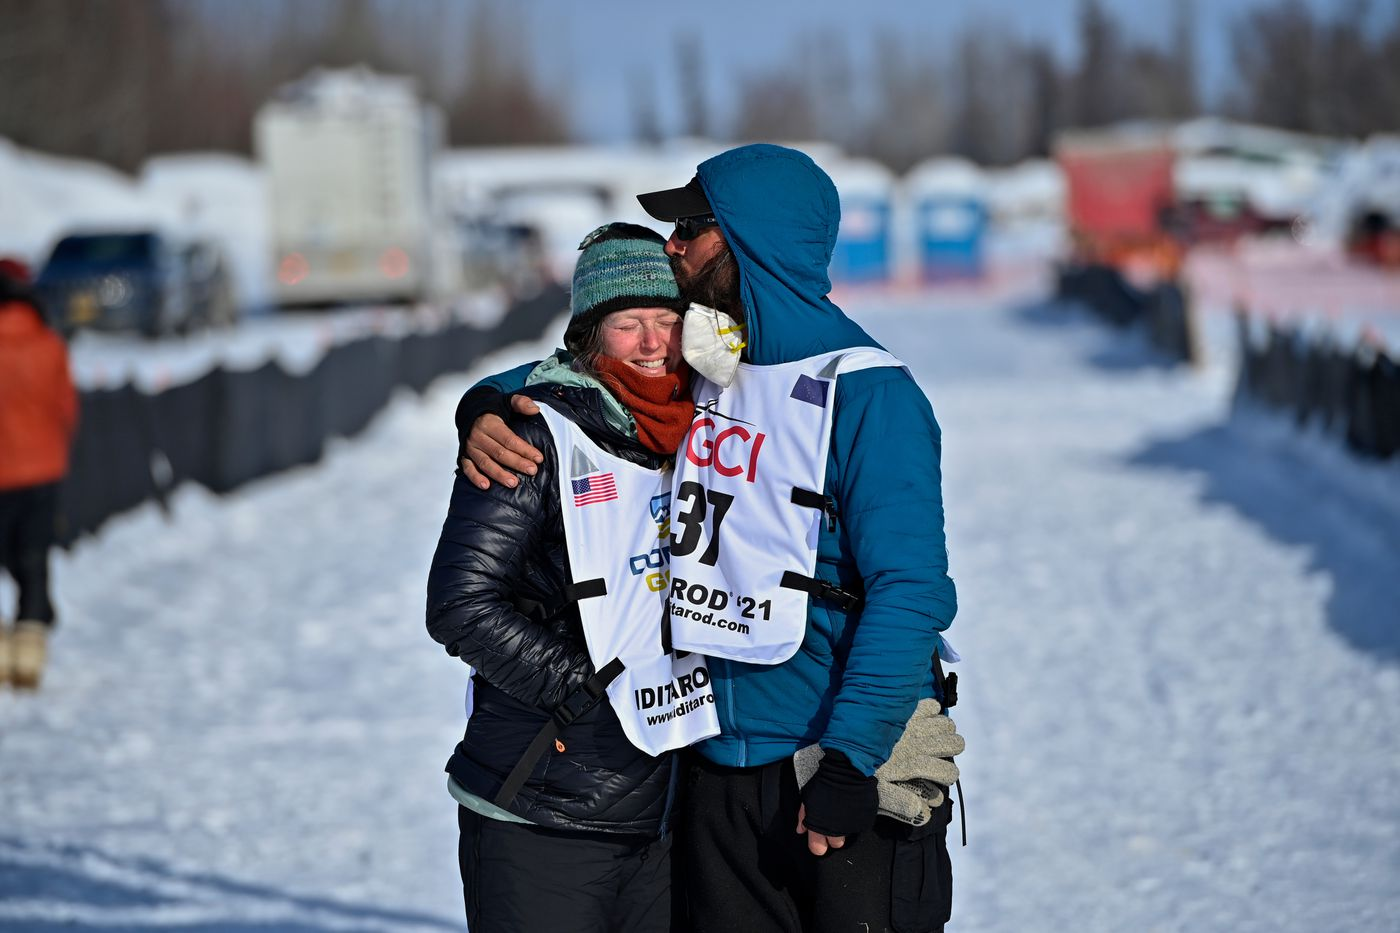 Paige Drobny gets a kiss from her husband Cody Strathe at the Iditarod finish line in Willow on March 16, 2021. Drobny finished 19th and Strathe finished 20th in the 2021 Iditarod. (Marc Lester / ADN)